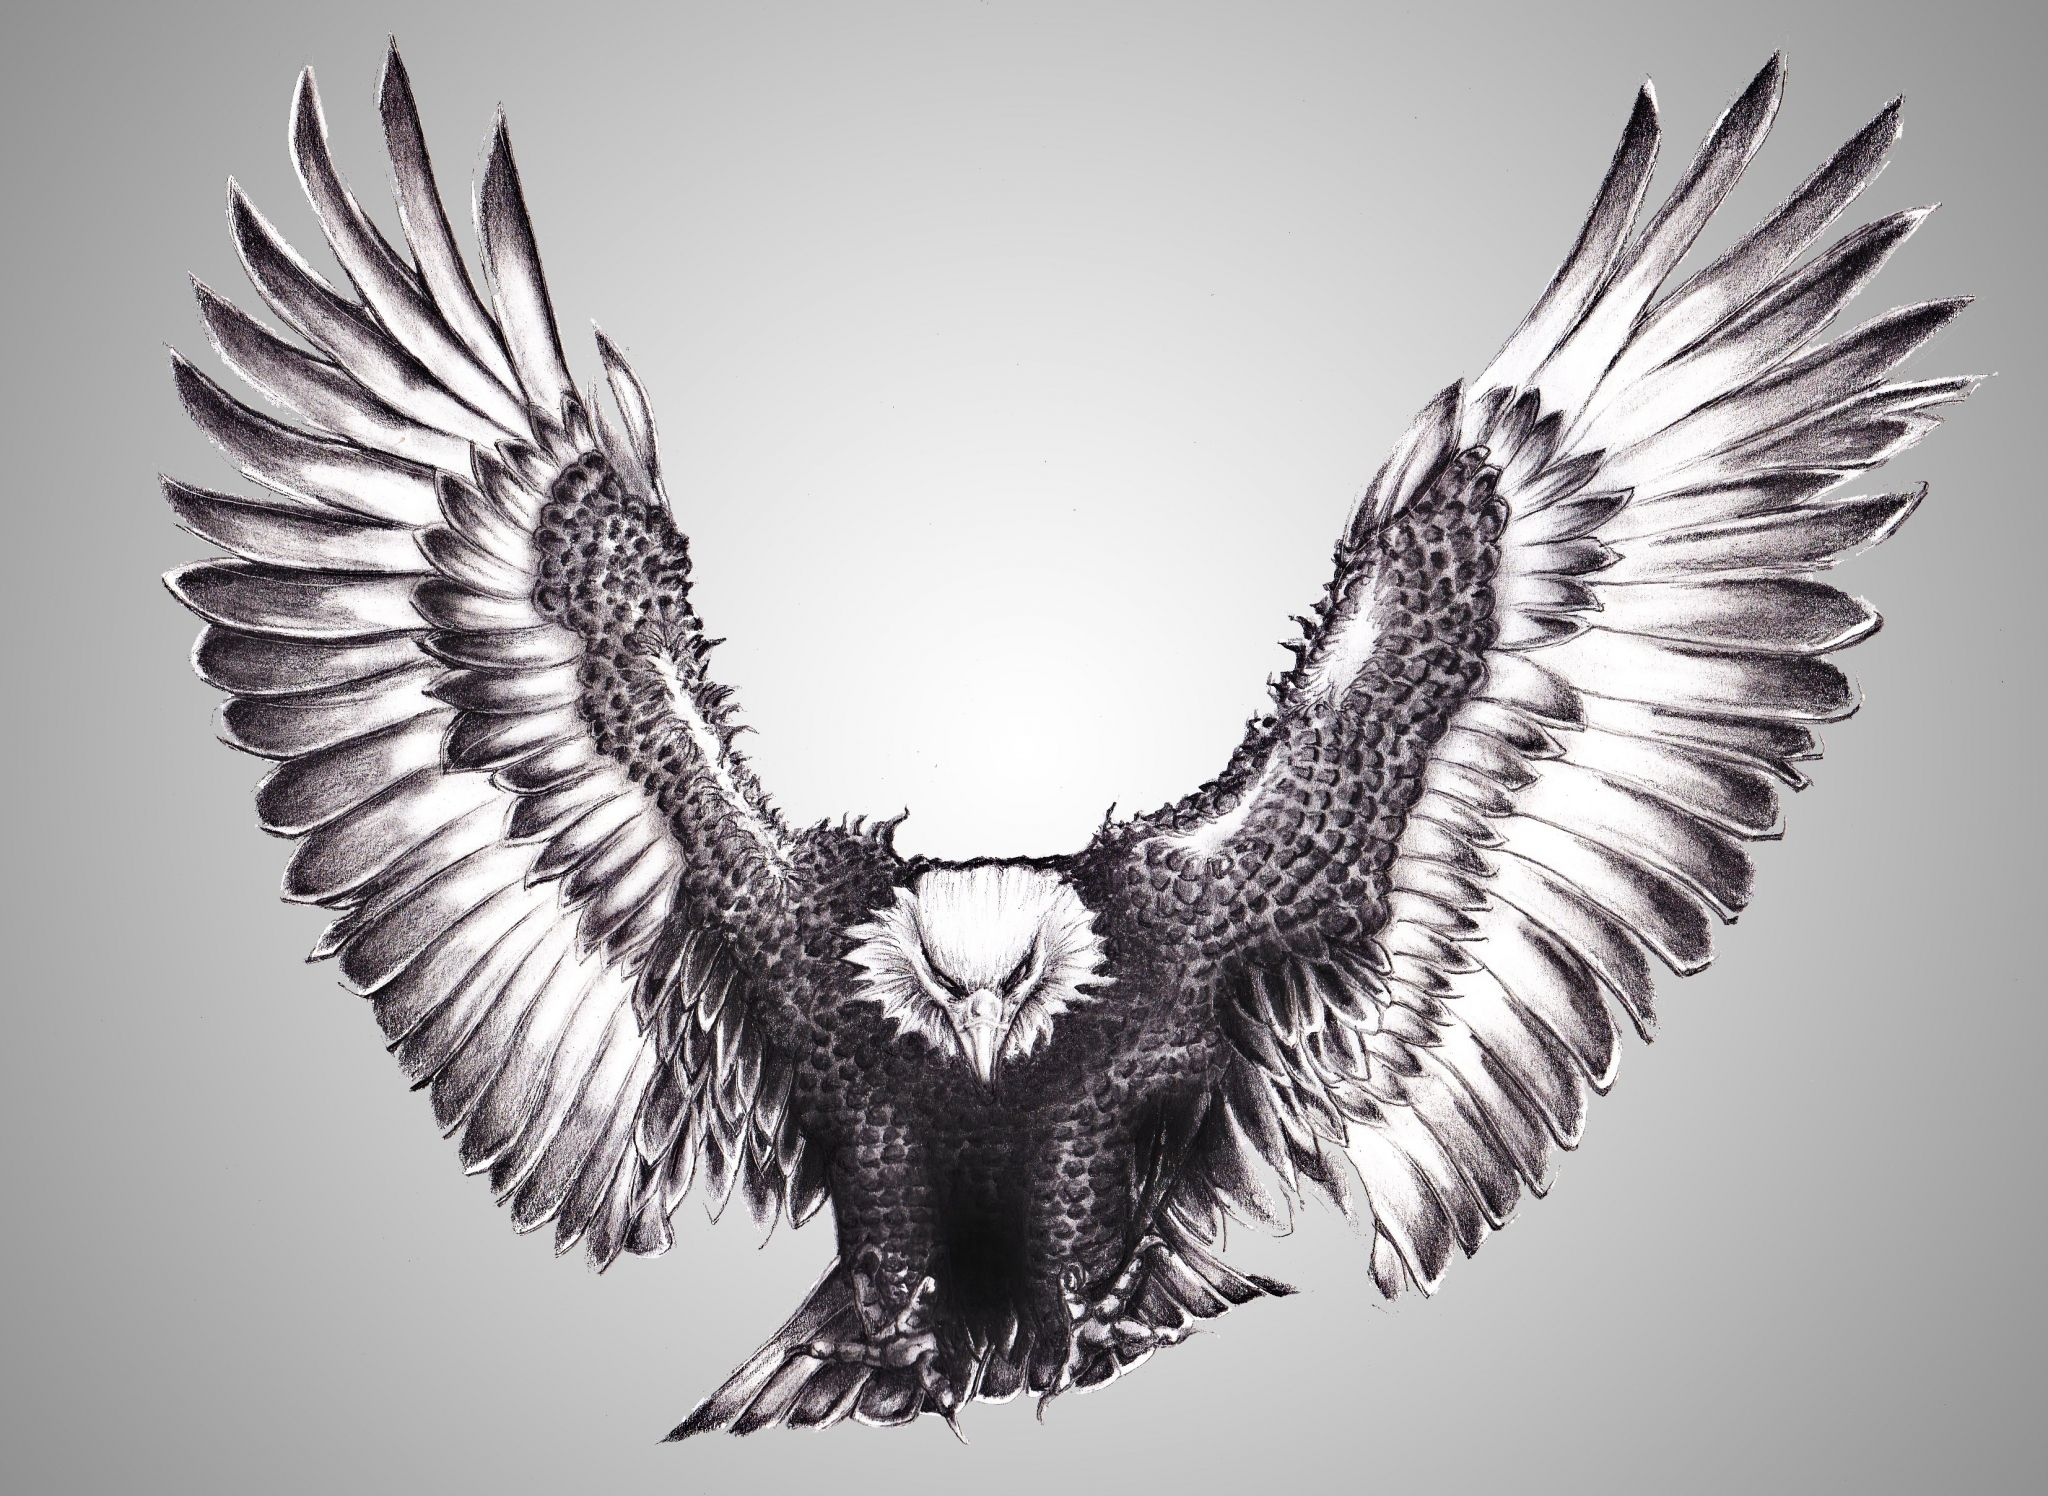 Eagle Pc Backgrounds Hd Free Eagle Neck Tattoo Eagle Tattoos Bald Eagle Tattoos Eagle tattoo wallpaper free download